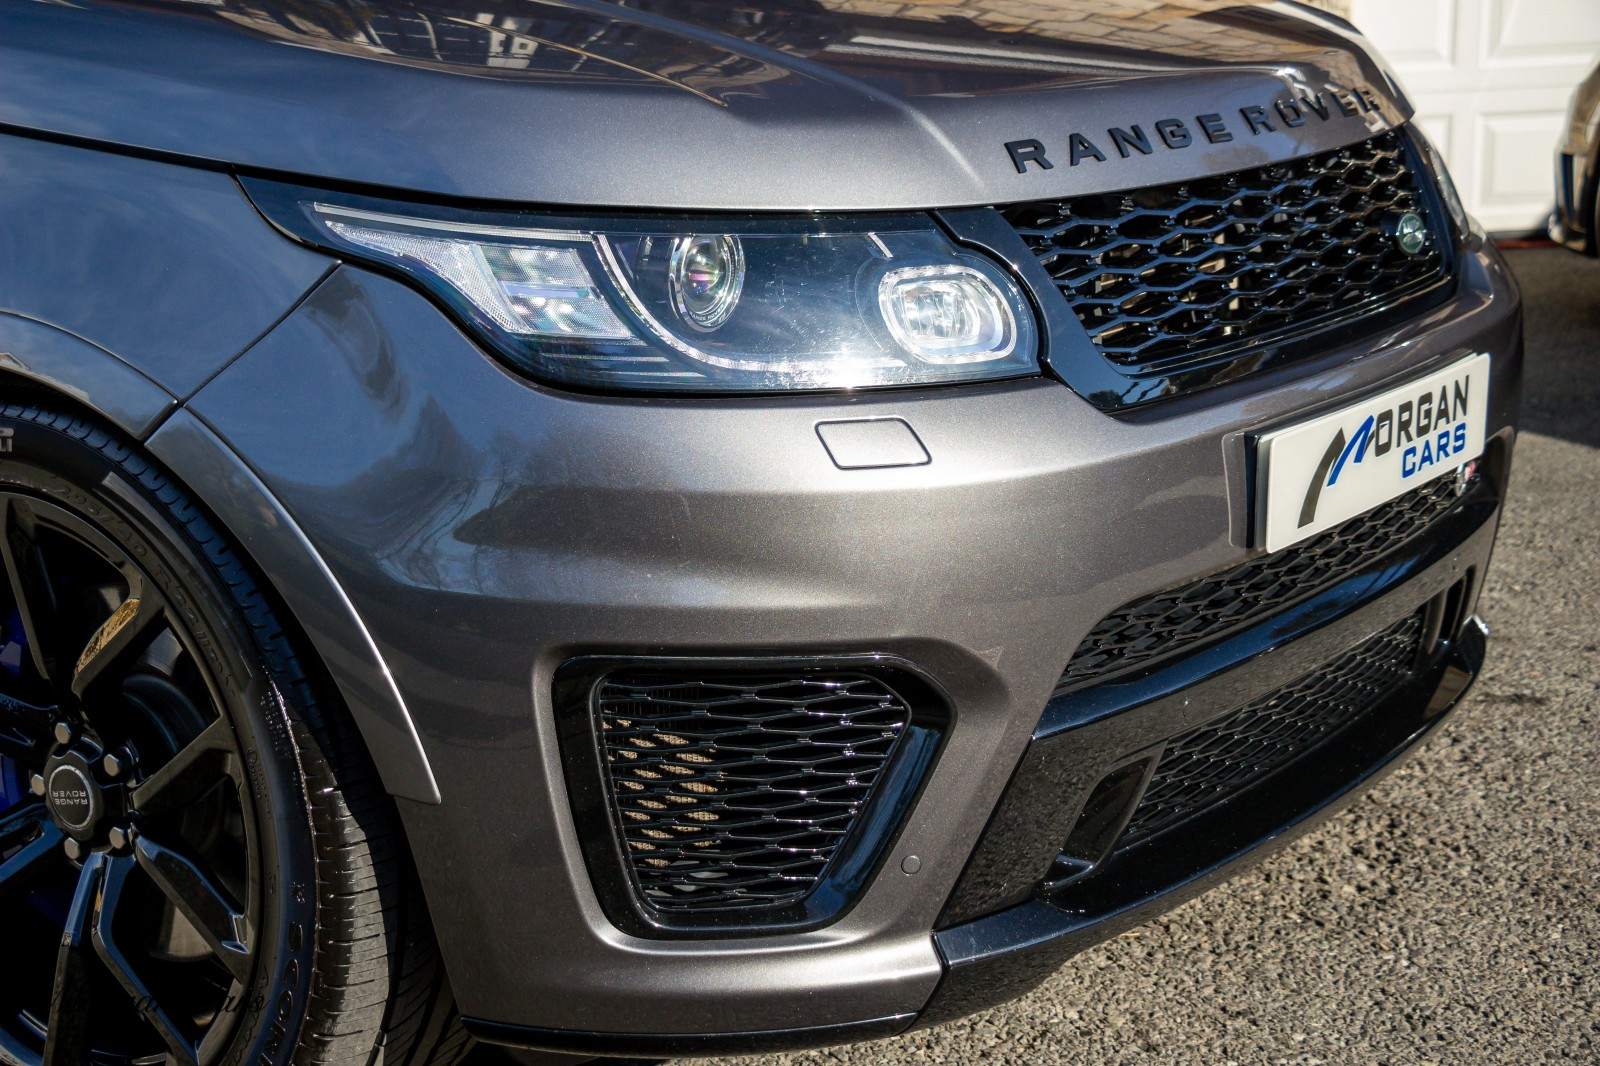 2016 Land Rover Range Rover Sport 5.0 SVR SUPERCHARGED Petrol Automatic – Morgan Cars 9 Mound Road, Warrenpoint, Newry BT34 3LW, UK full